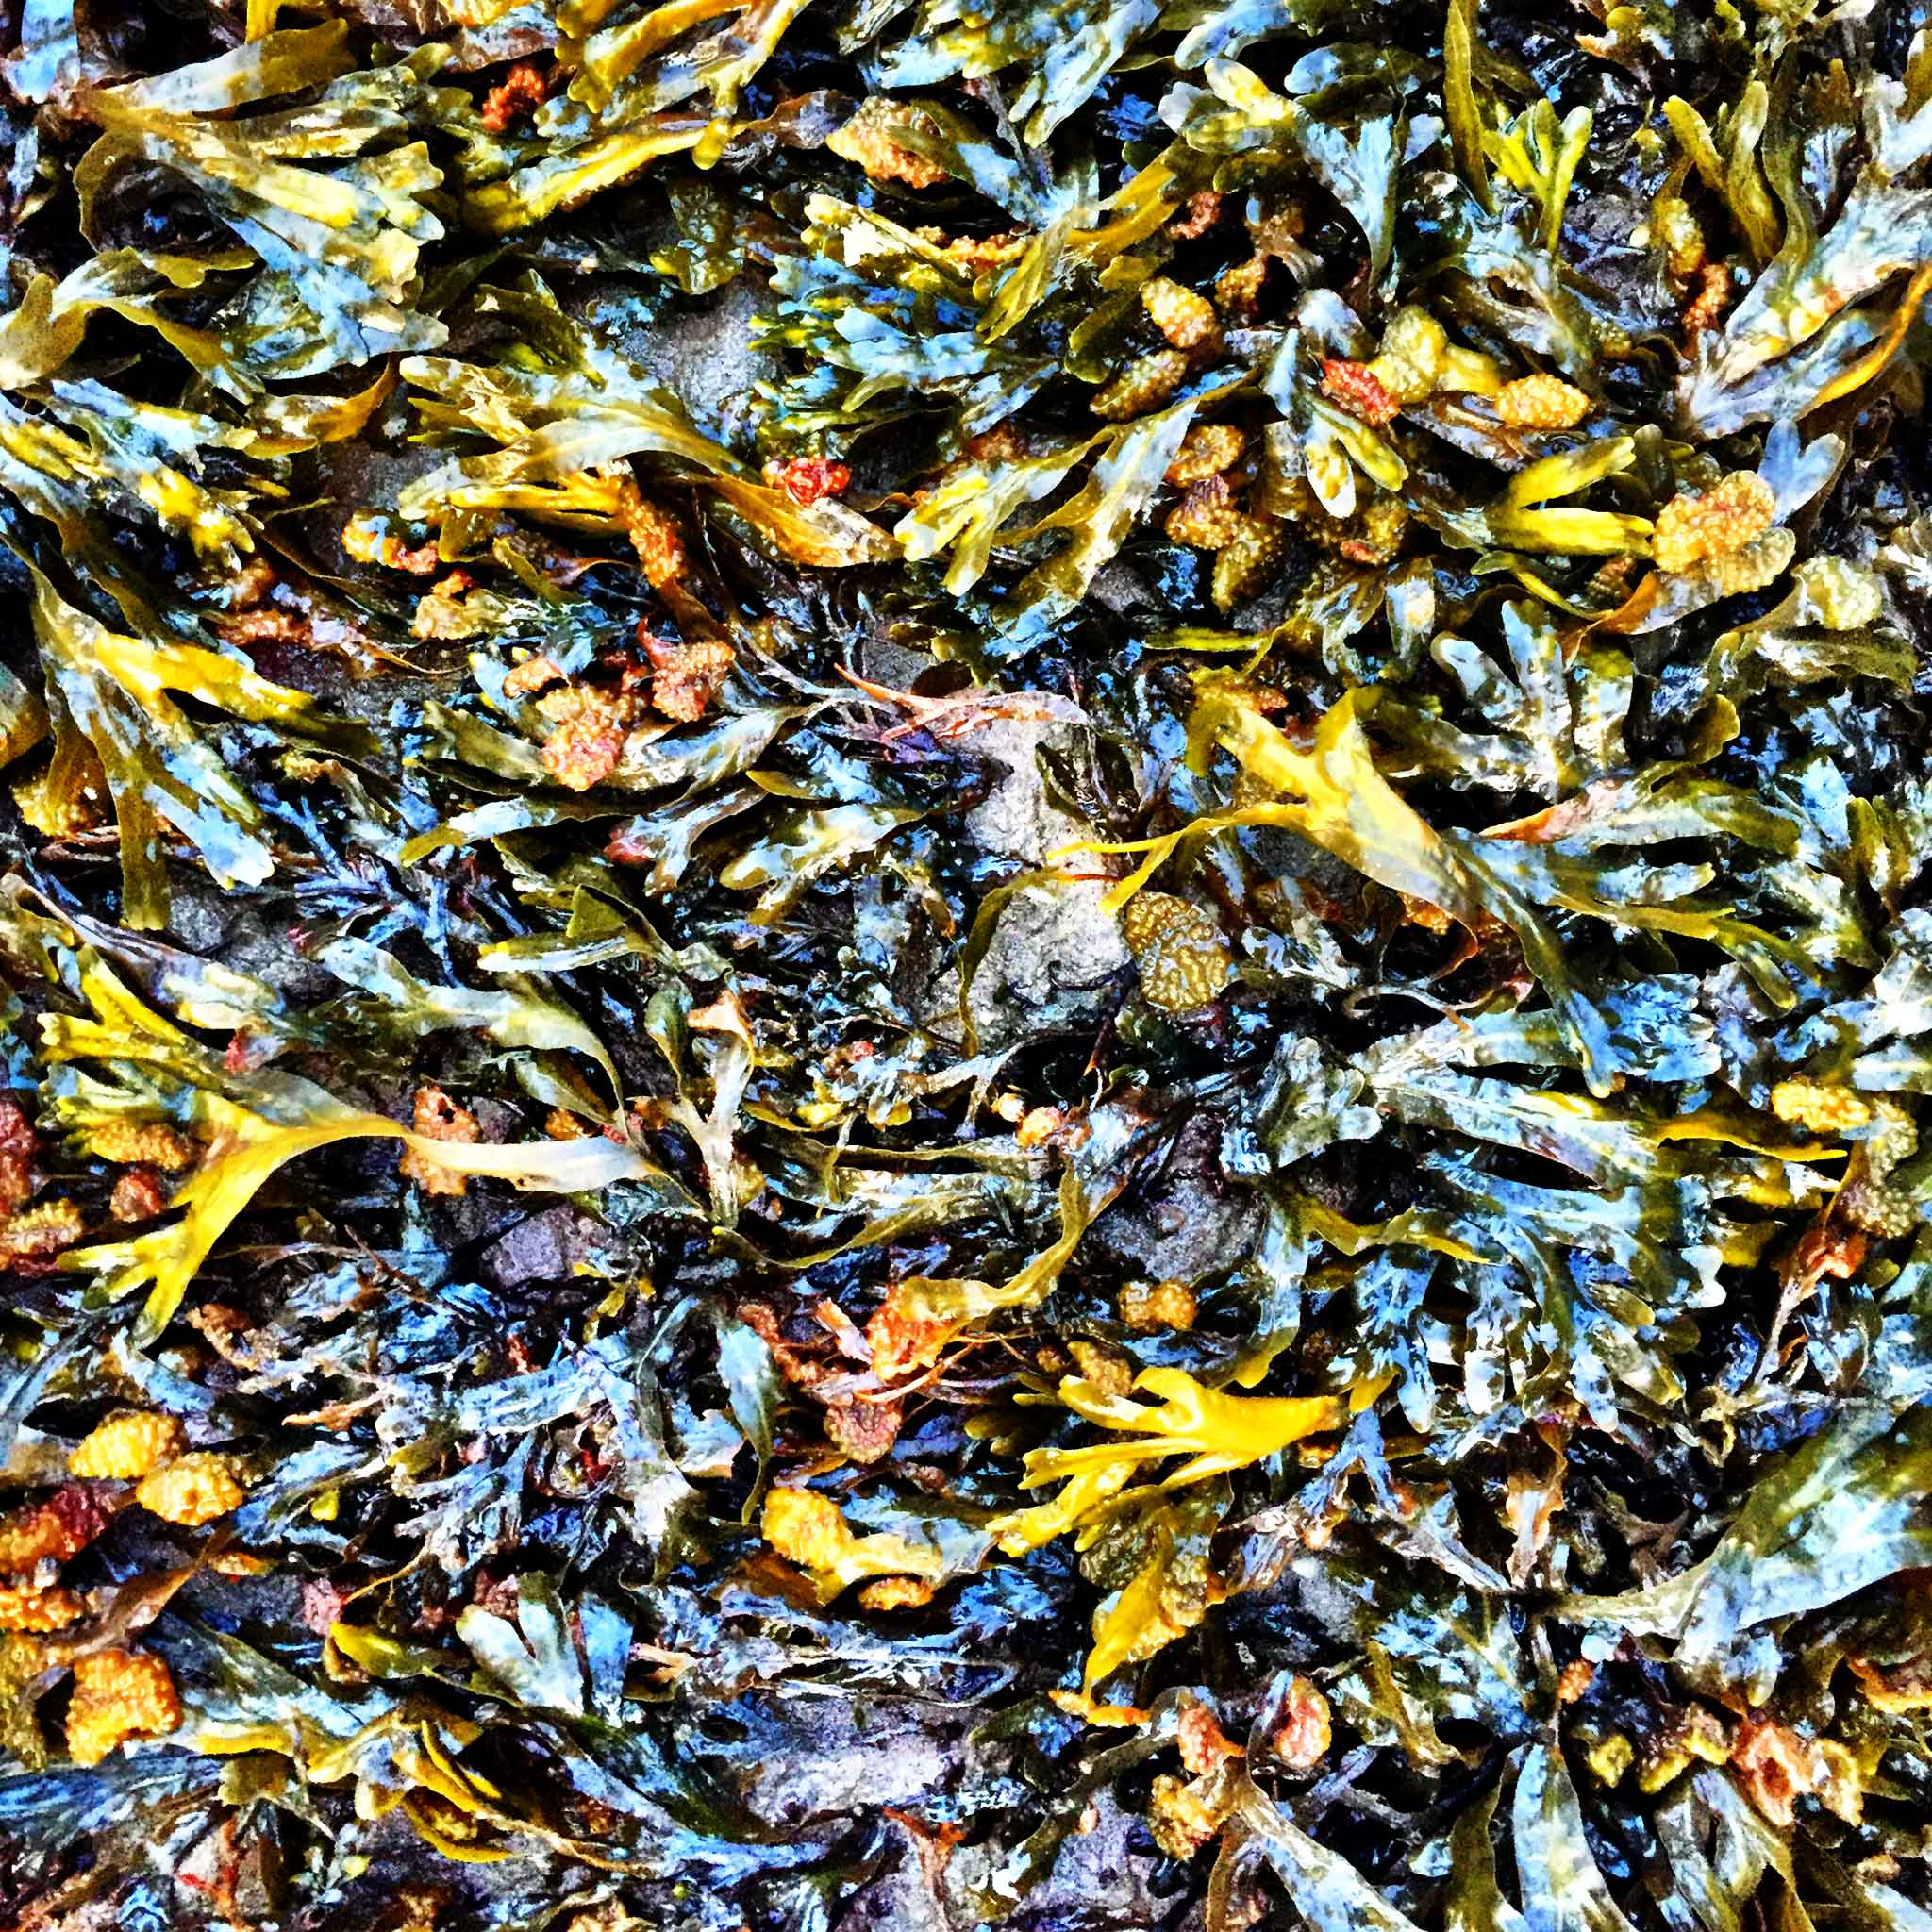 Colour enhanced photograph of seaweed in the tidal zone of the Petitcodiac River on the Bay of Fundy.   Image by The Ruggist.